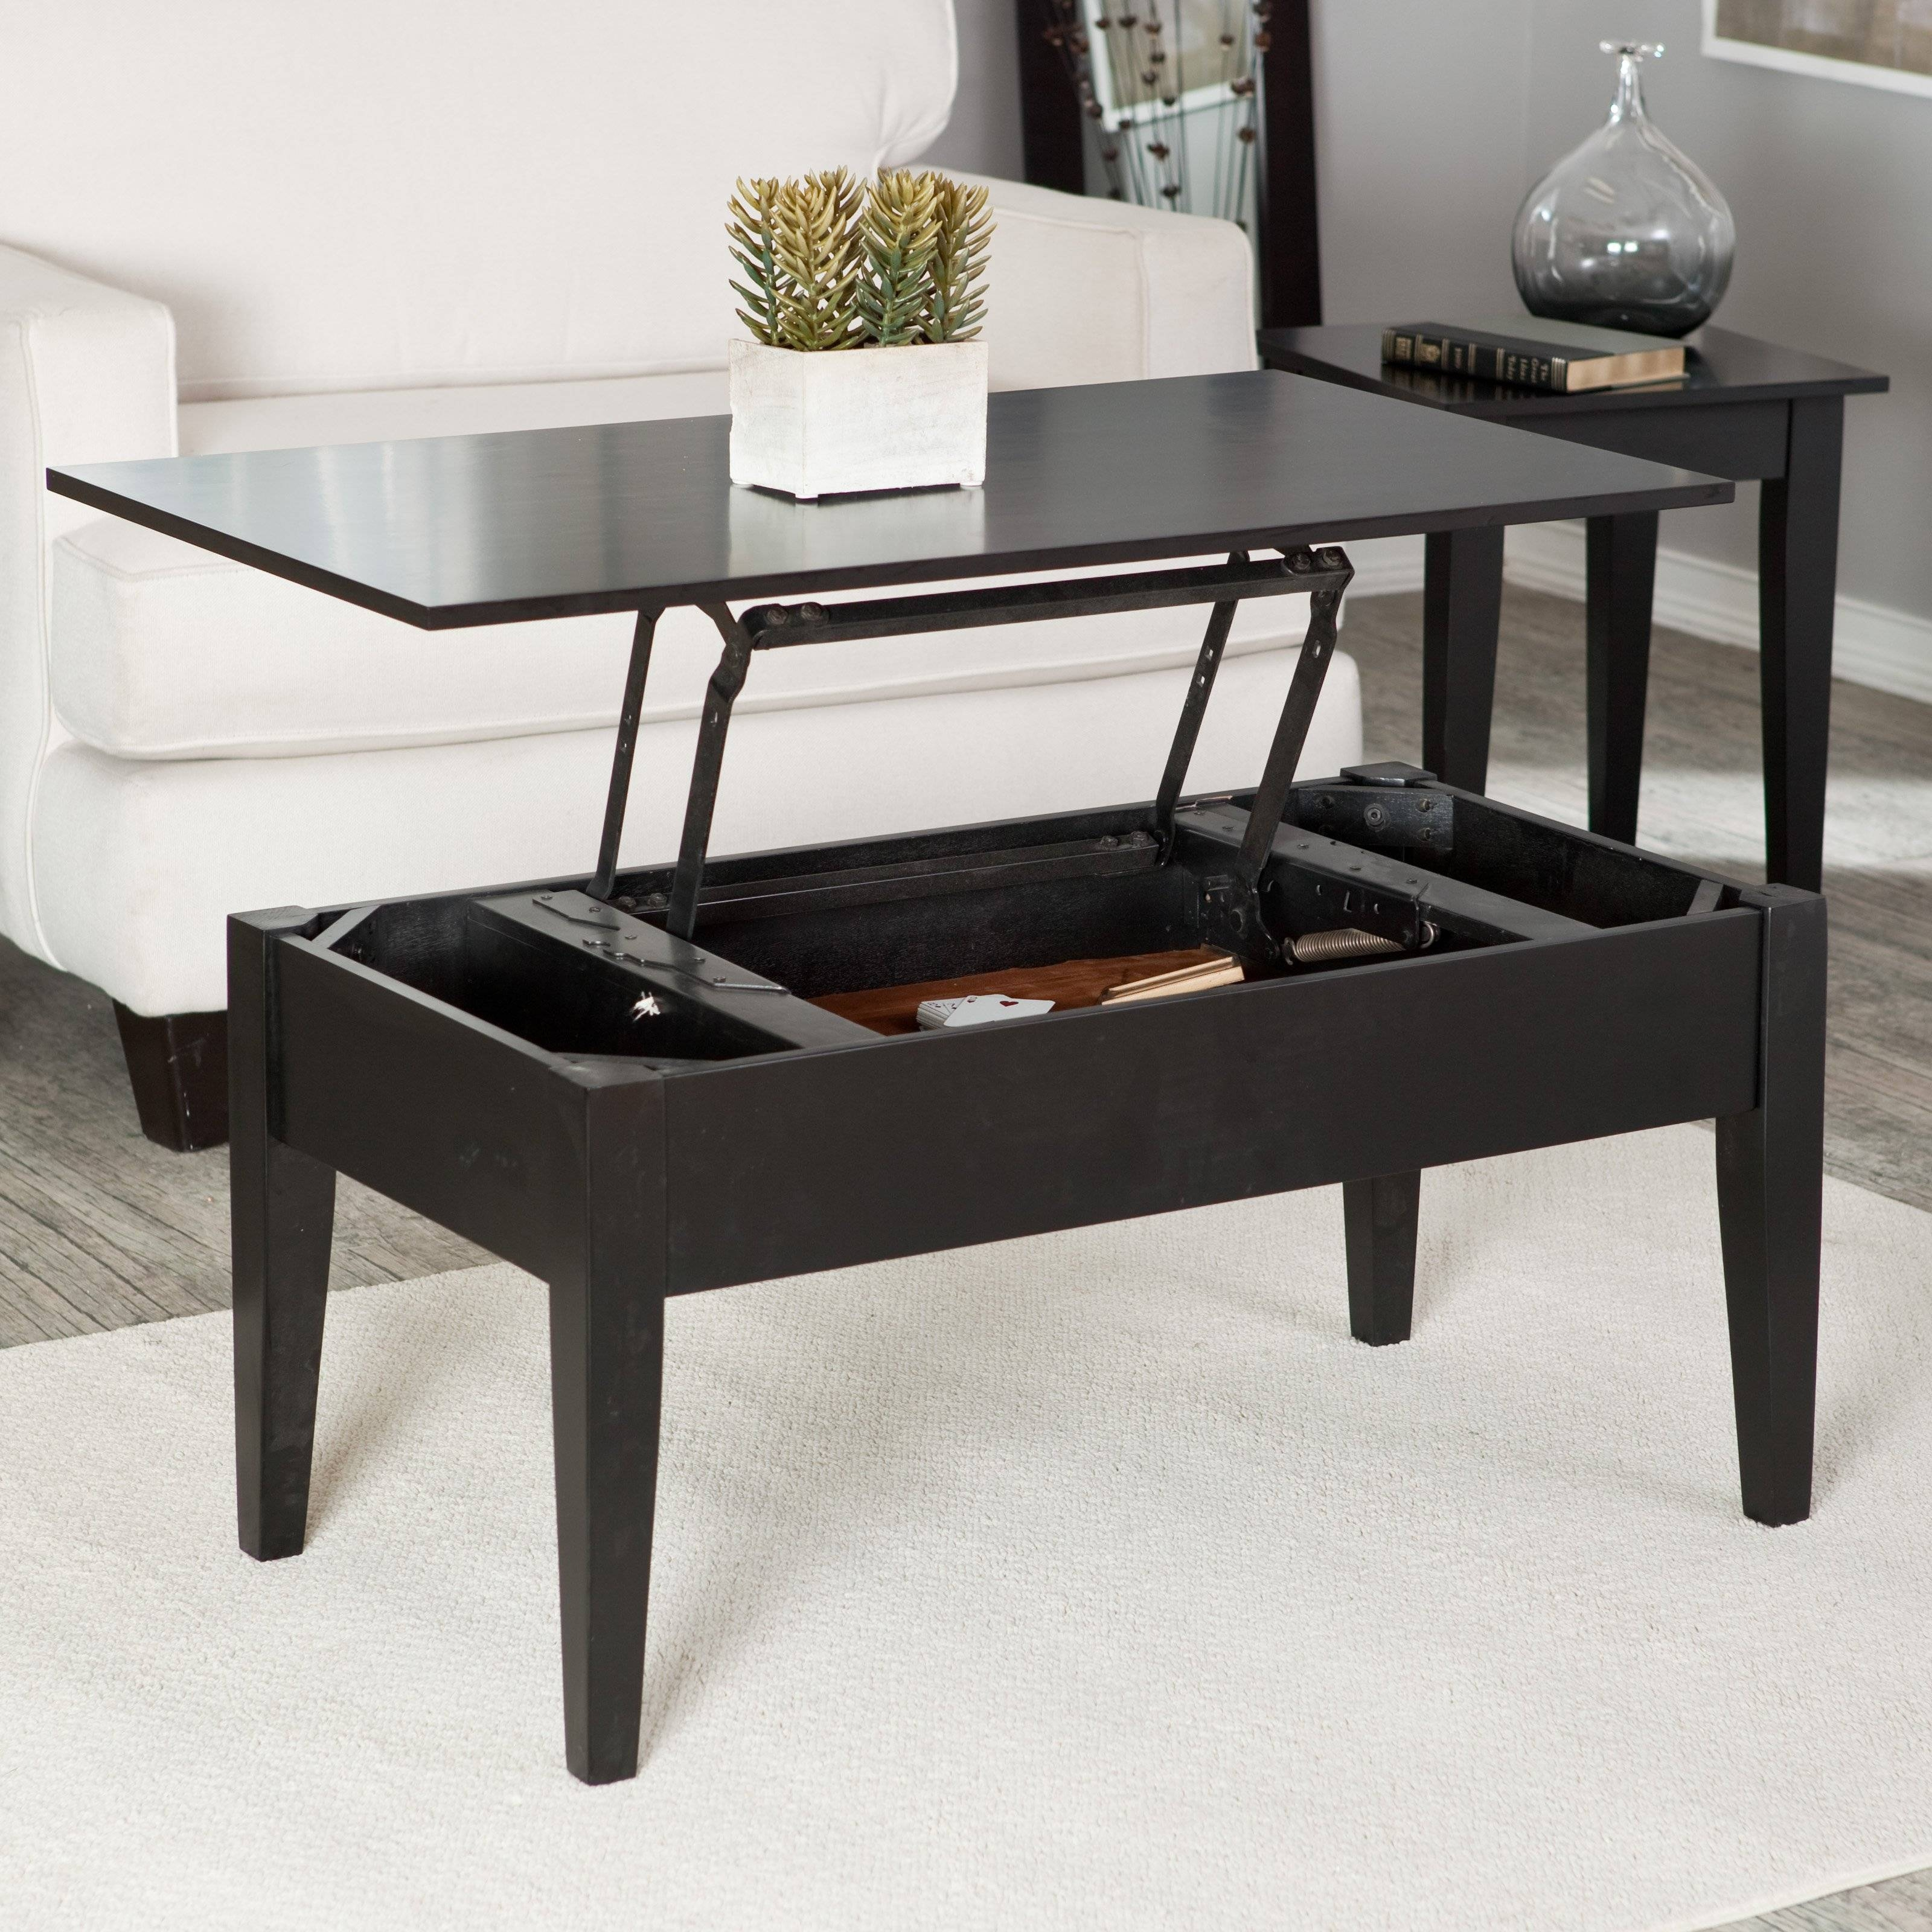 Turner Lift Top Coffee Table - Oak | Hayneedle regarding White and Black Coffee Tables (Image 27 of 30)